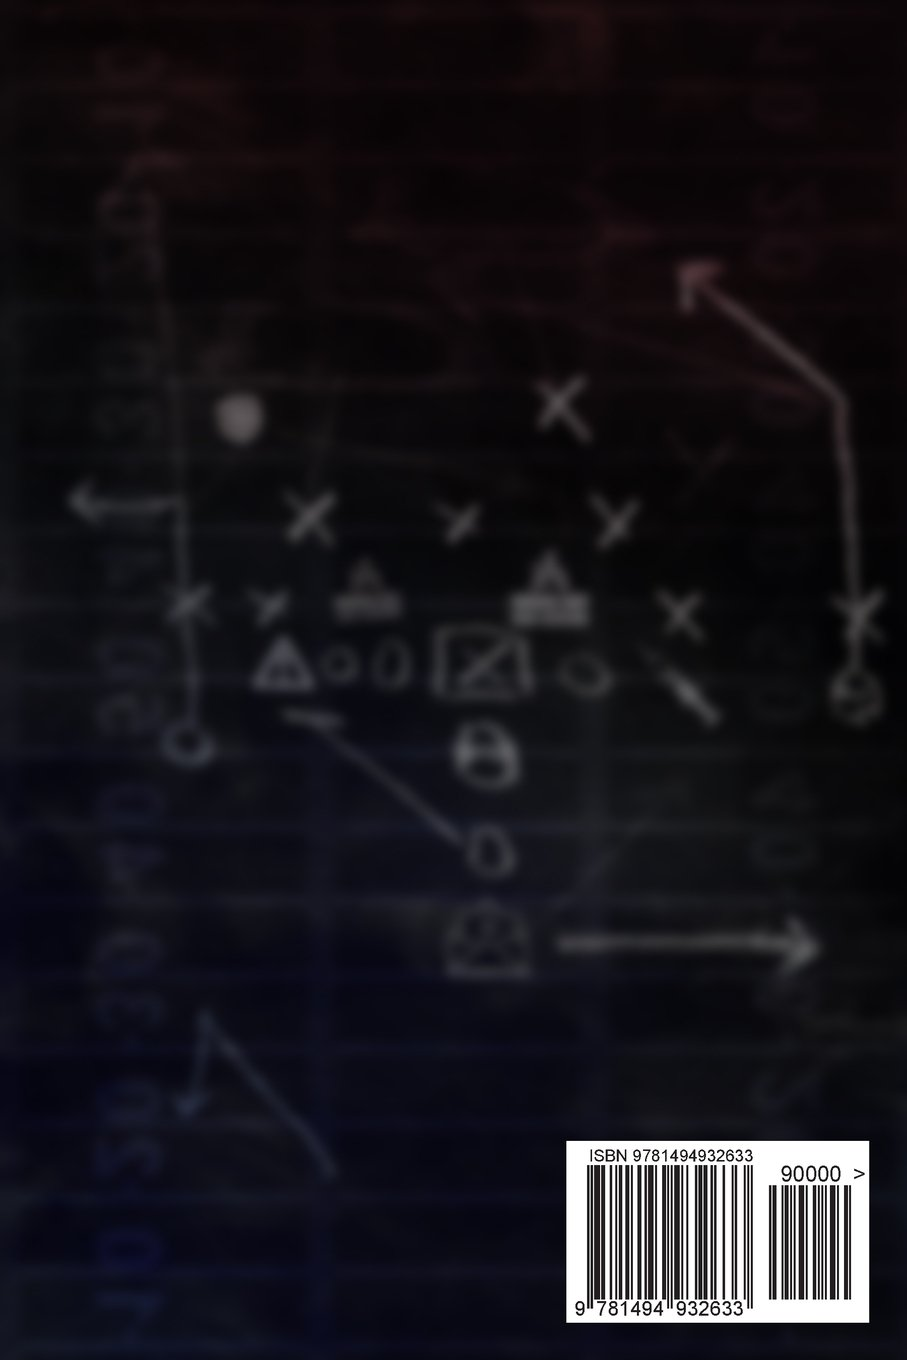 back-page-hacker-playbook.jpg